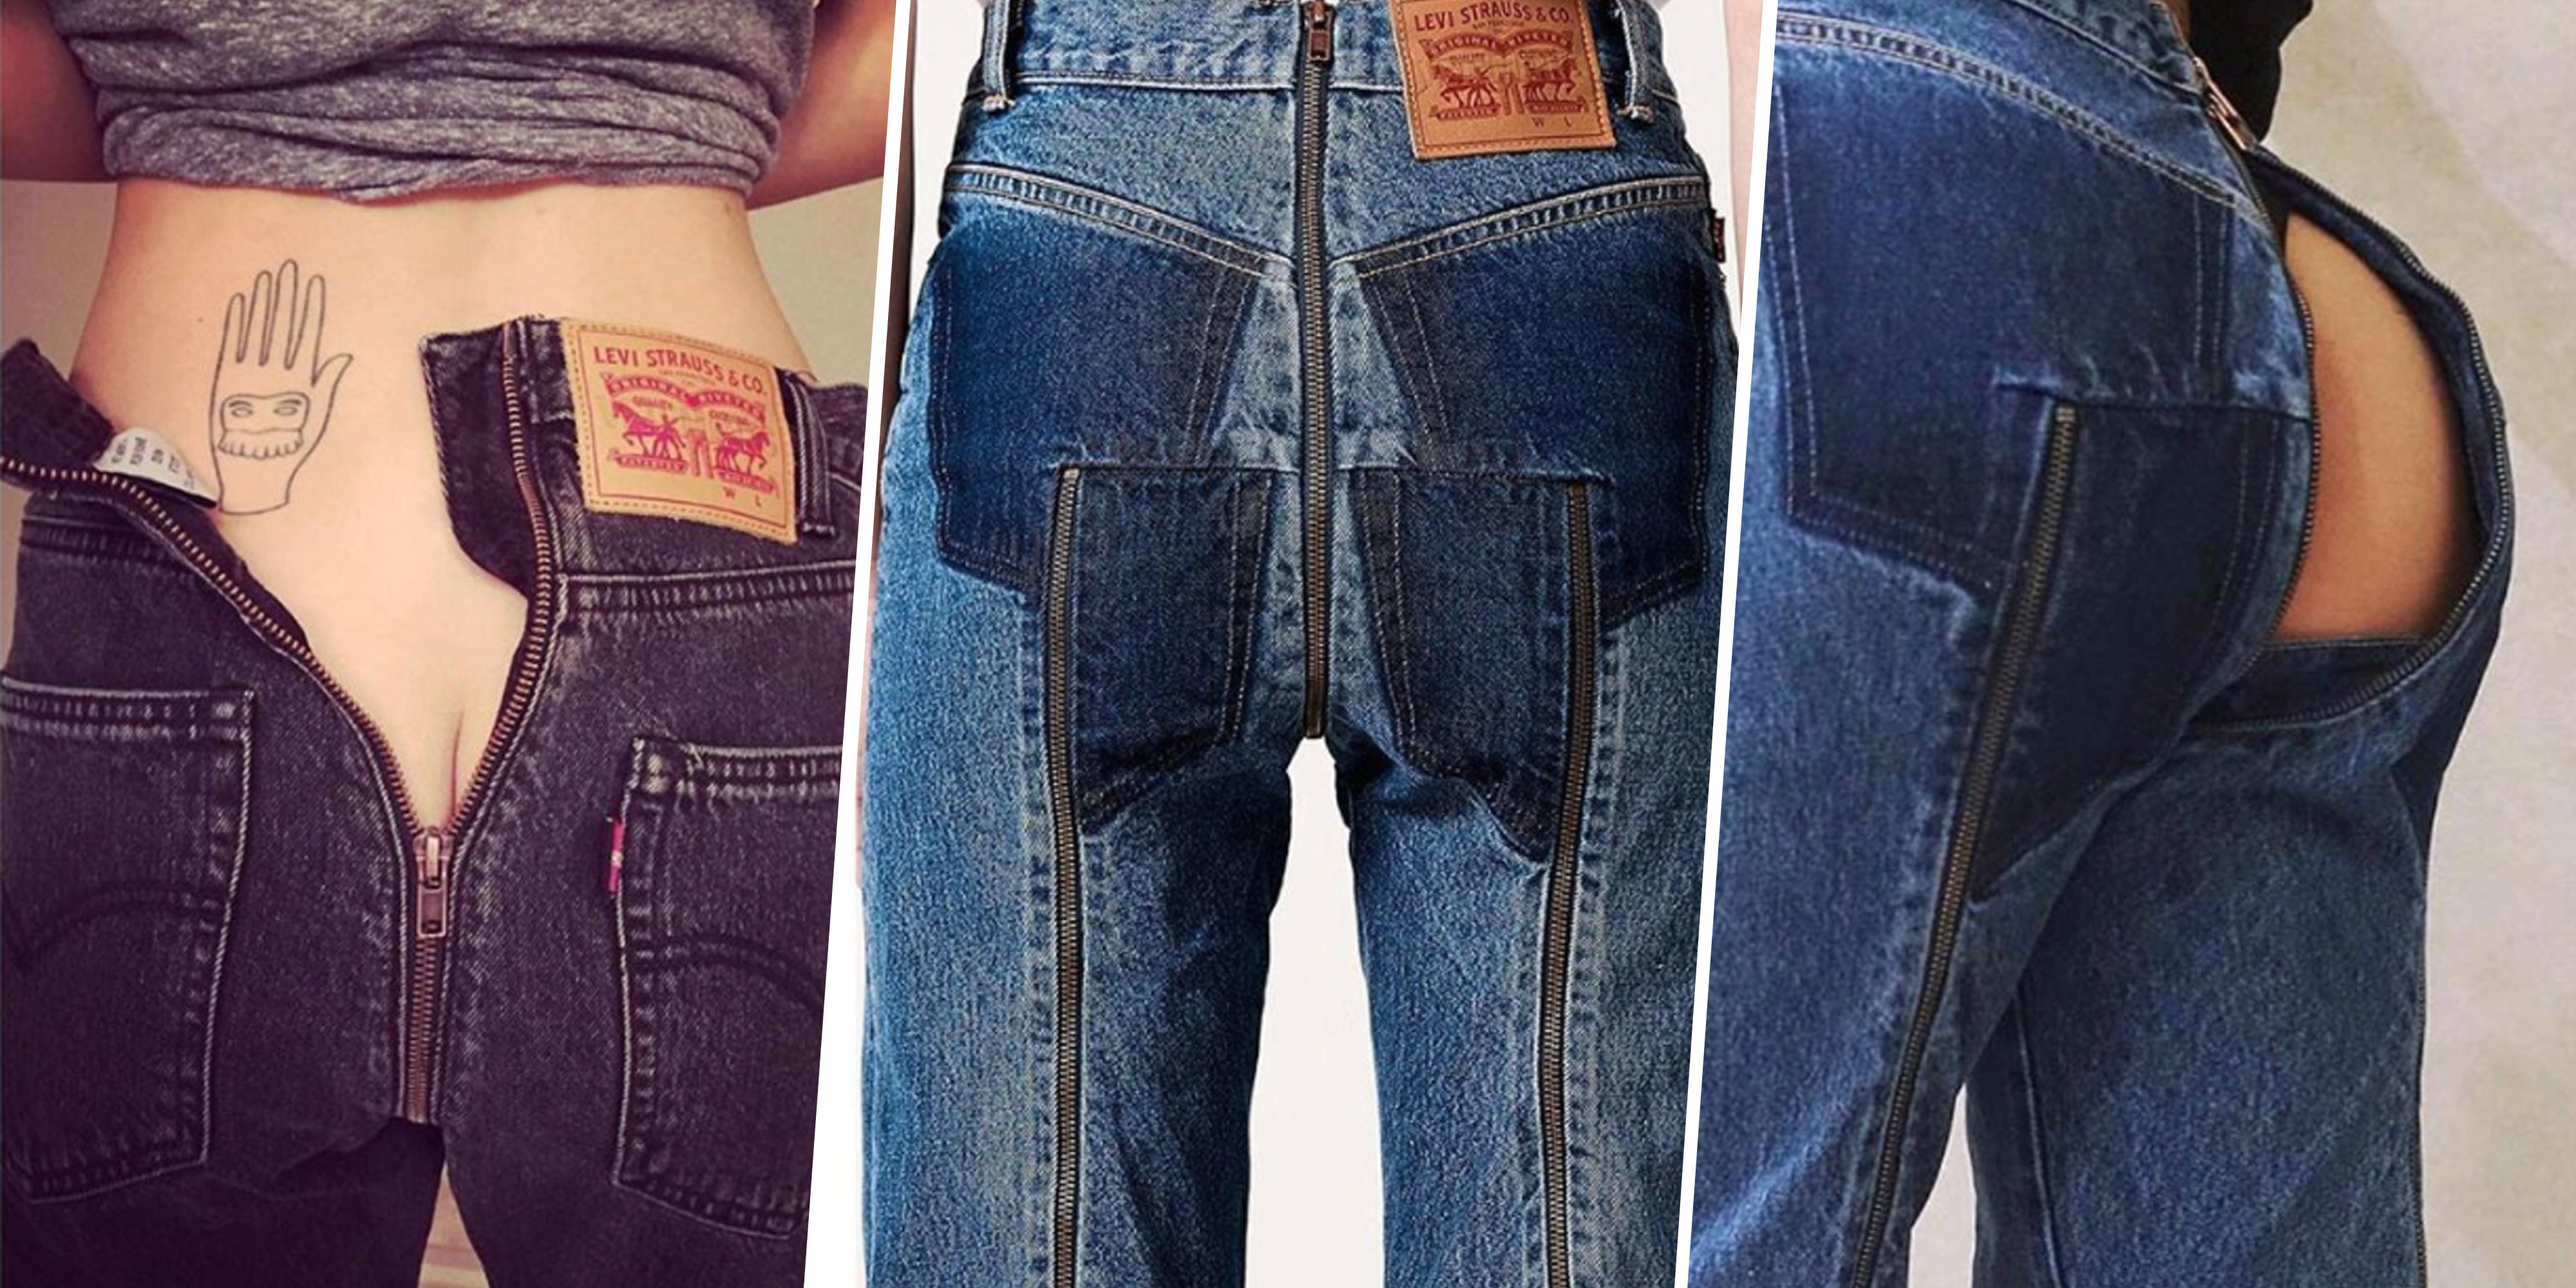 Vetements Bare Butt Jeans History Of Butt Less Pants